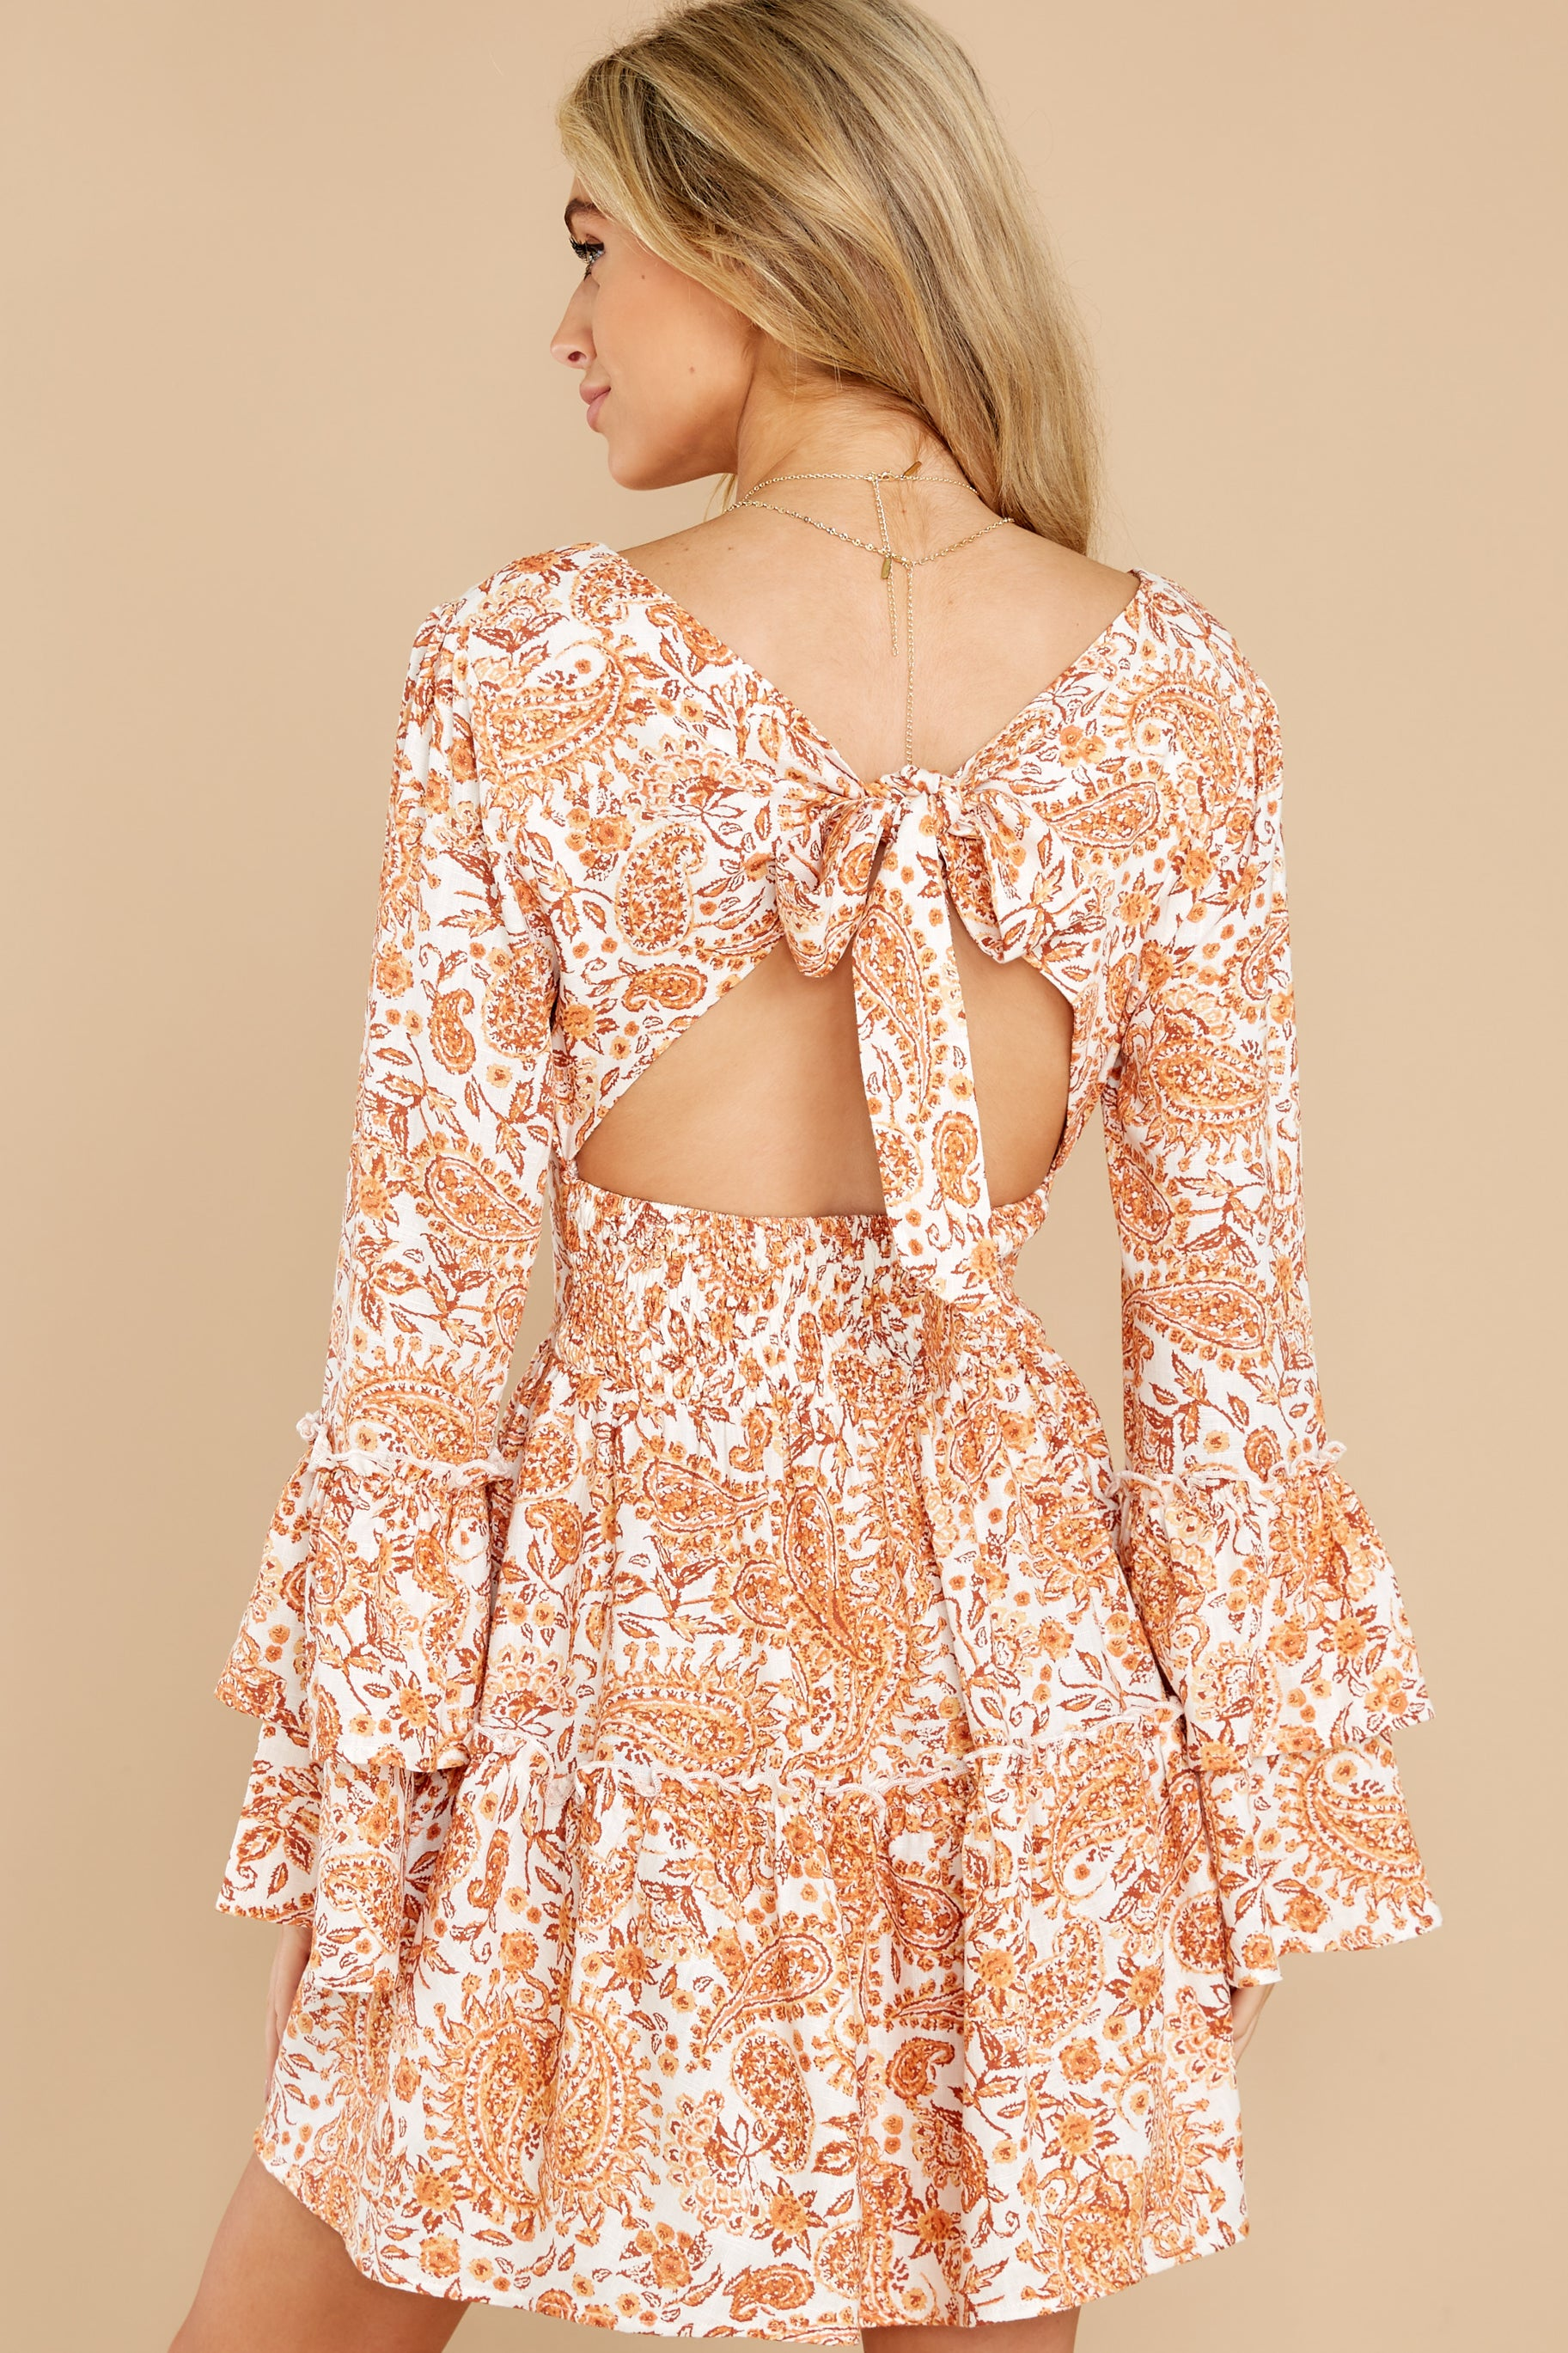 8 Sunrise Paisley Orange Mini Dress at reddress.com